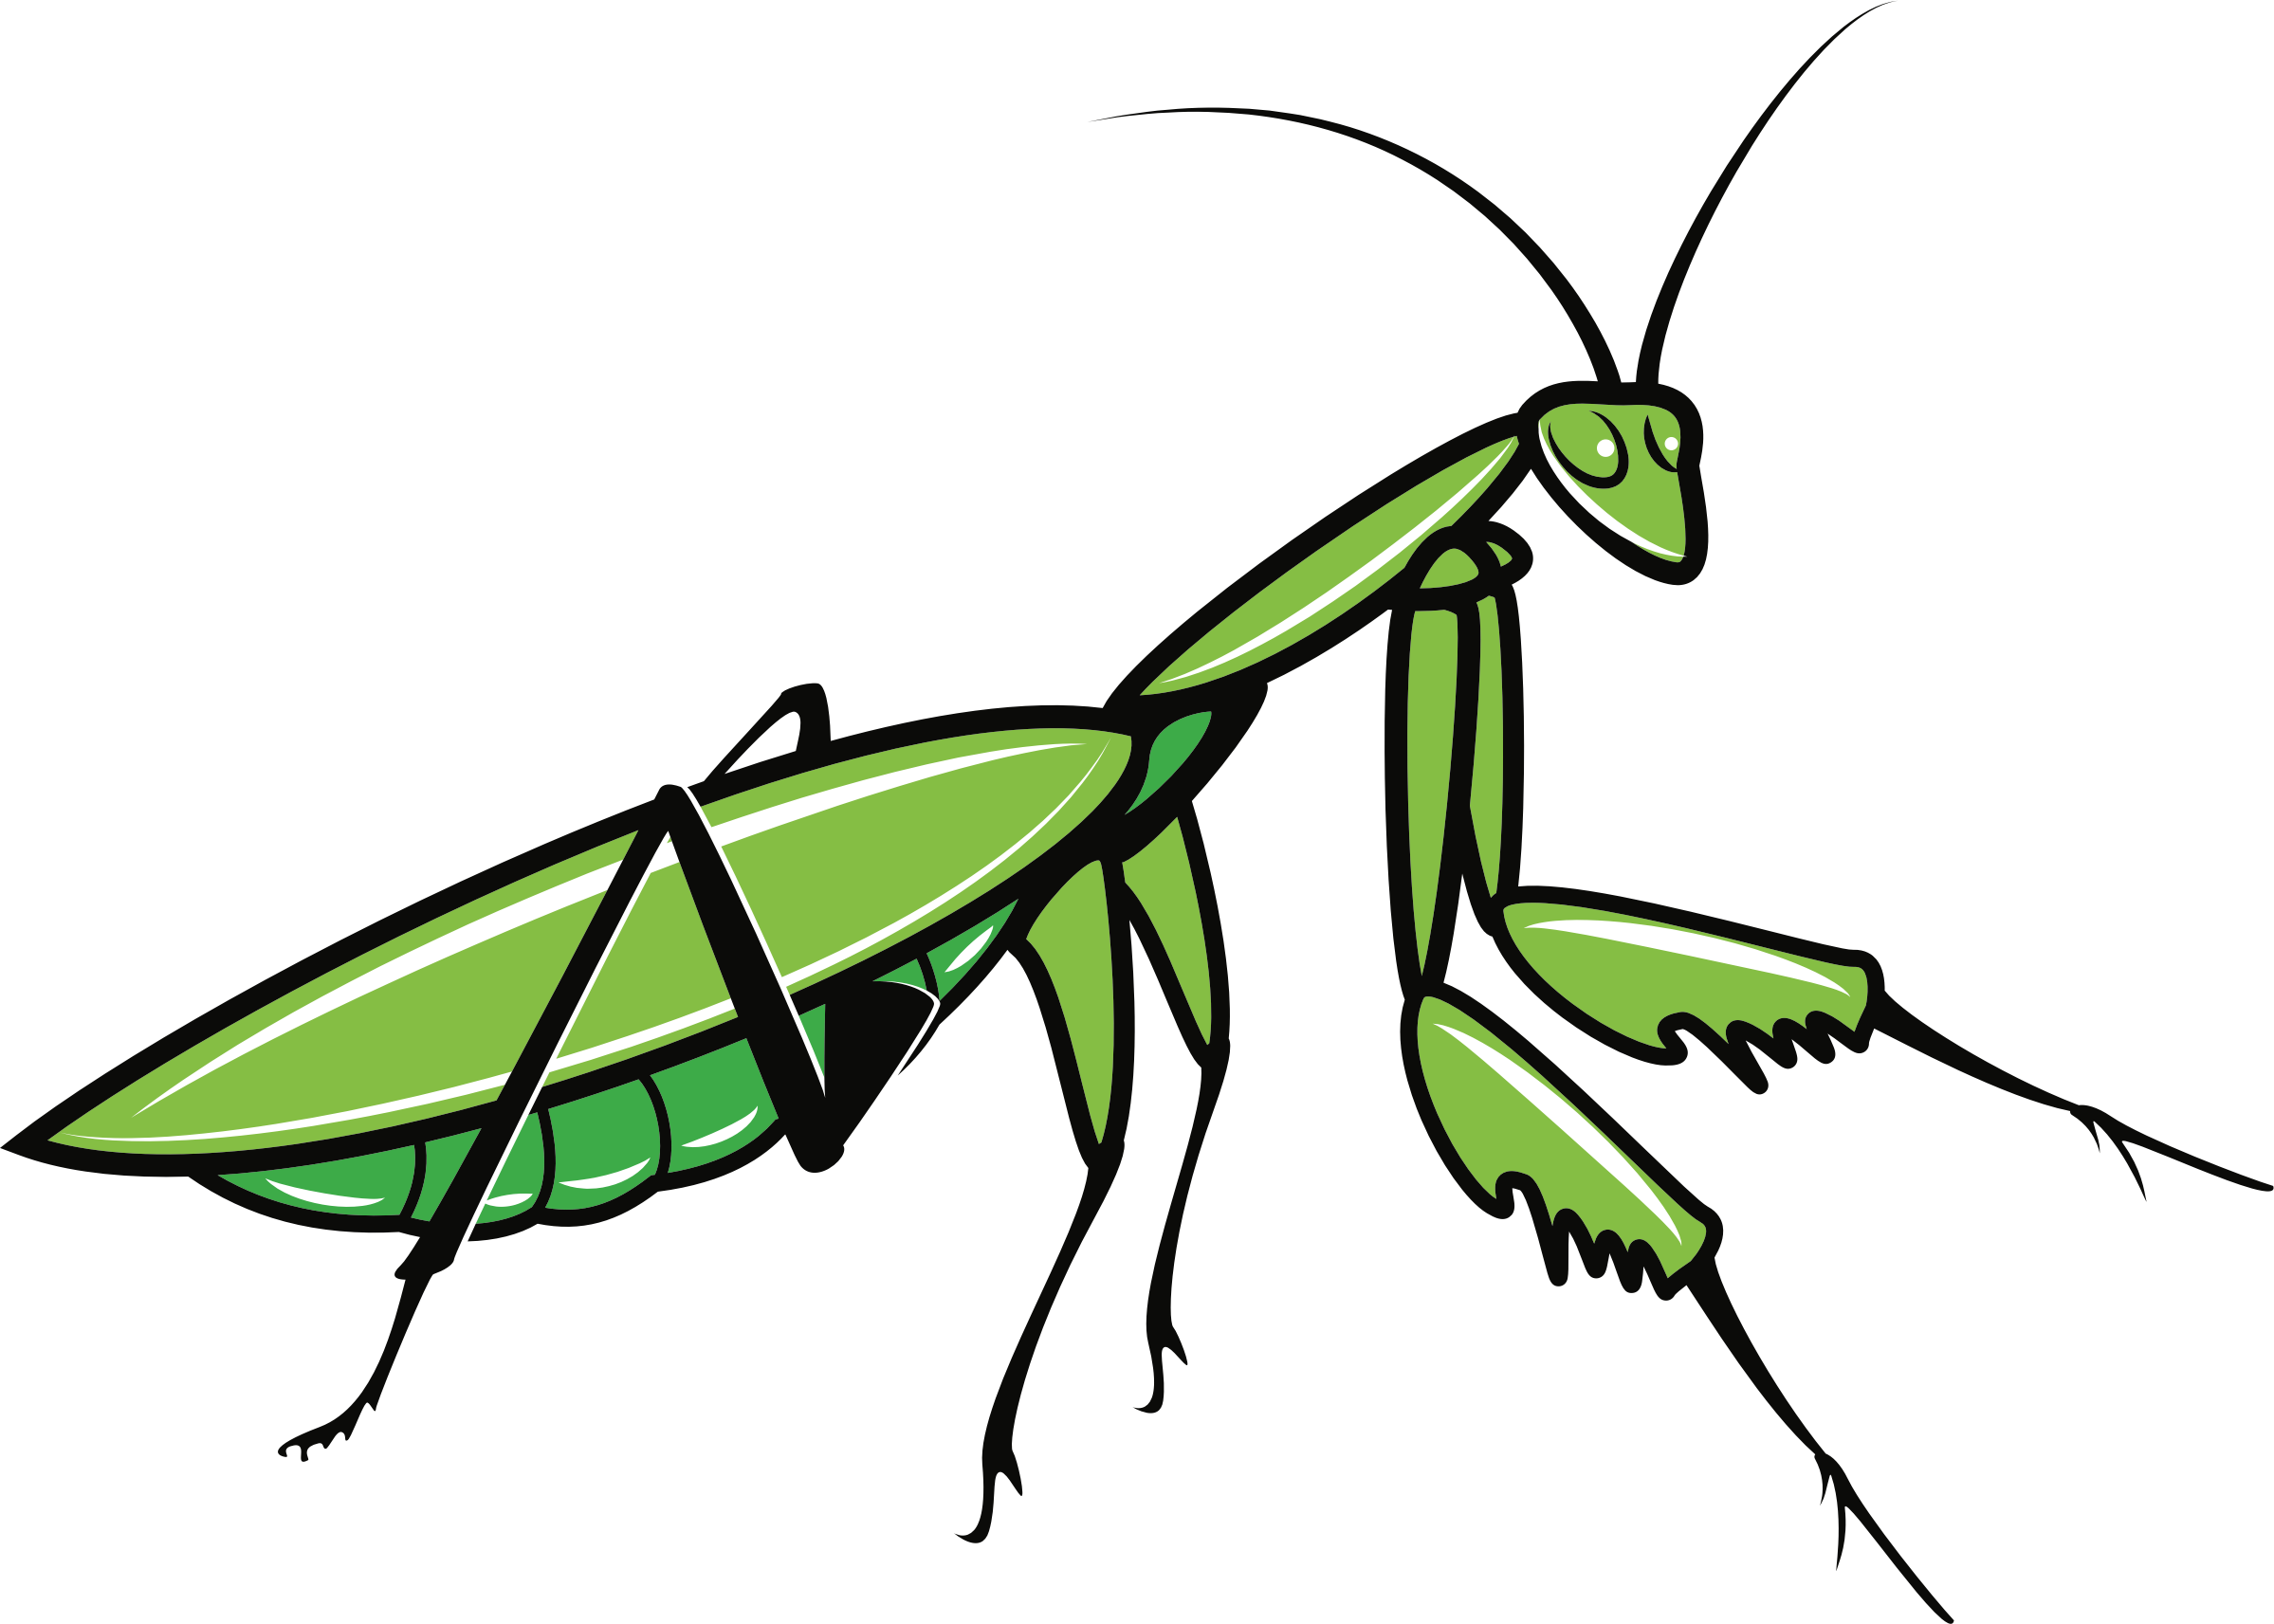 Big image png. Insects clipart praying mantis